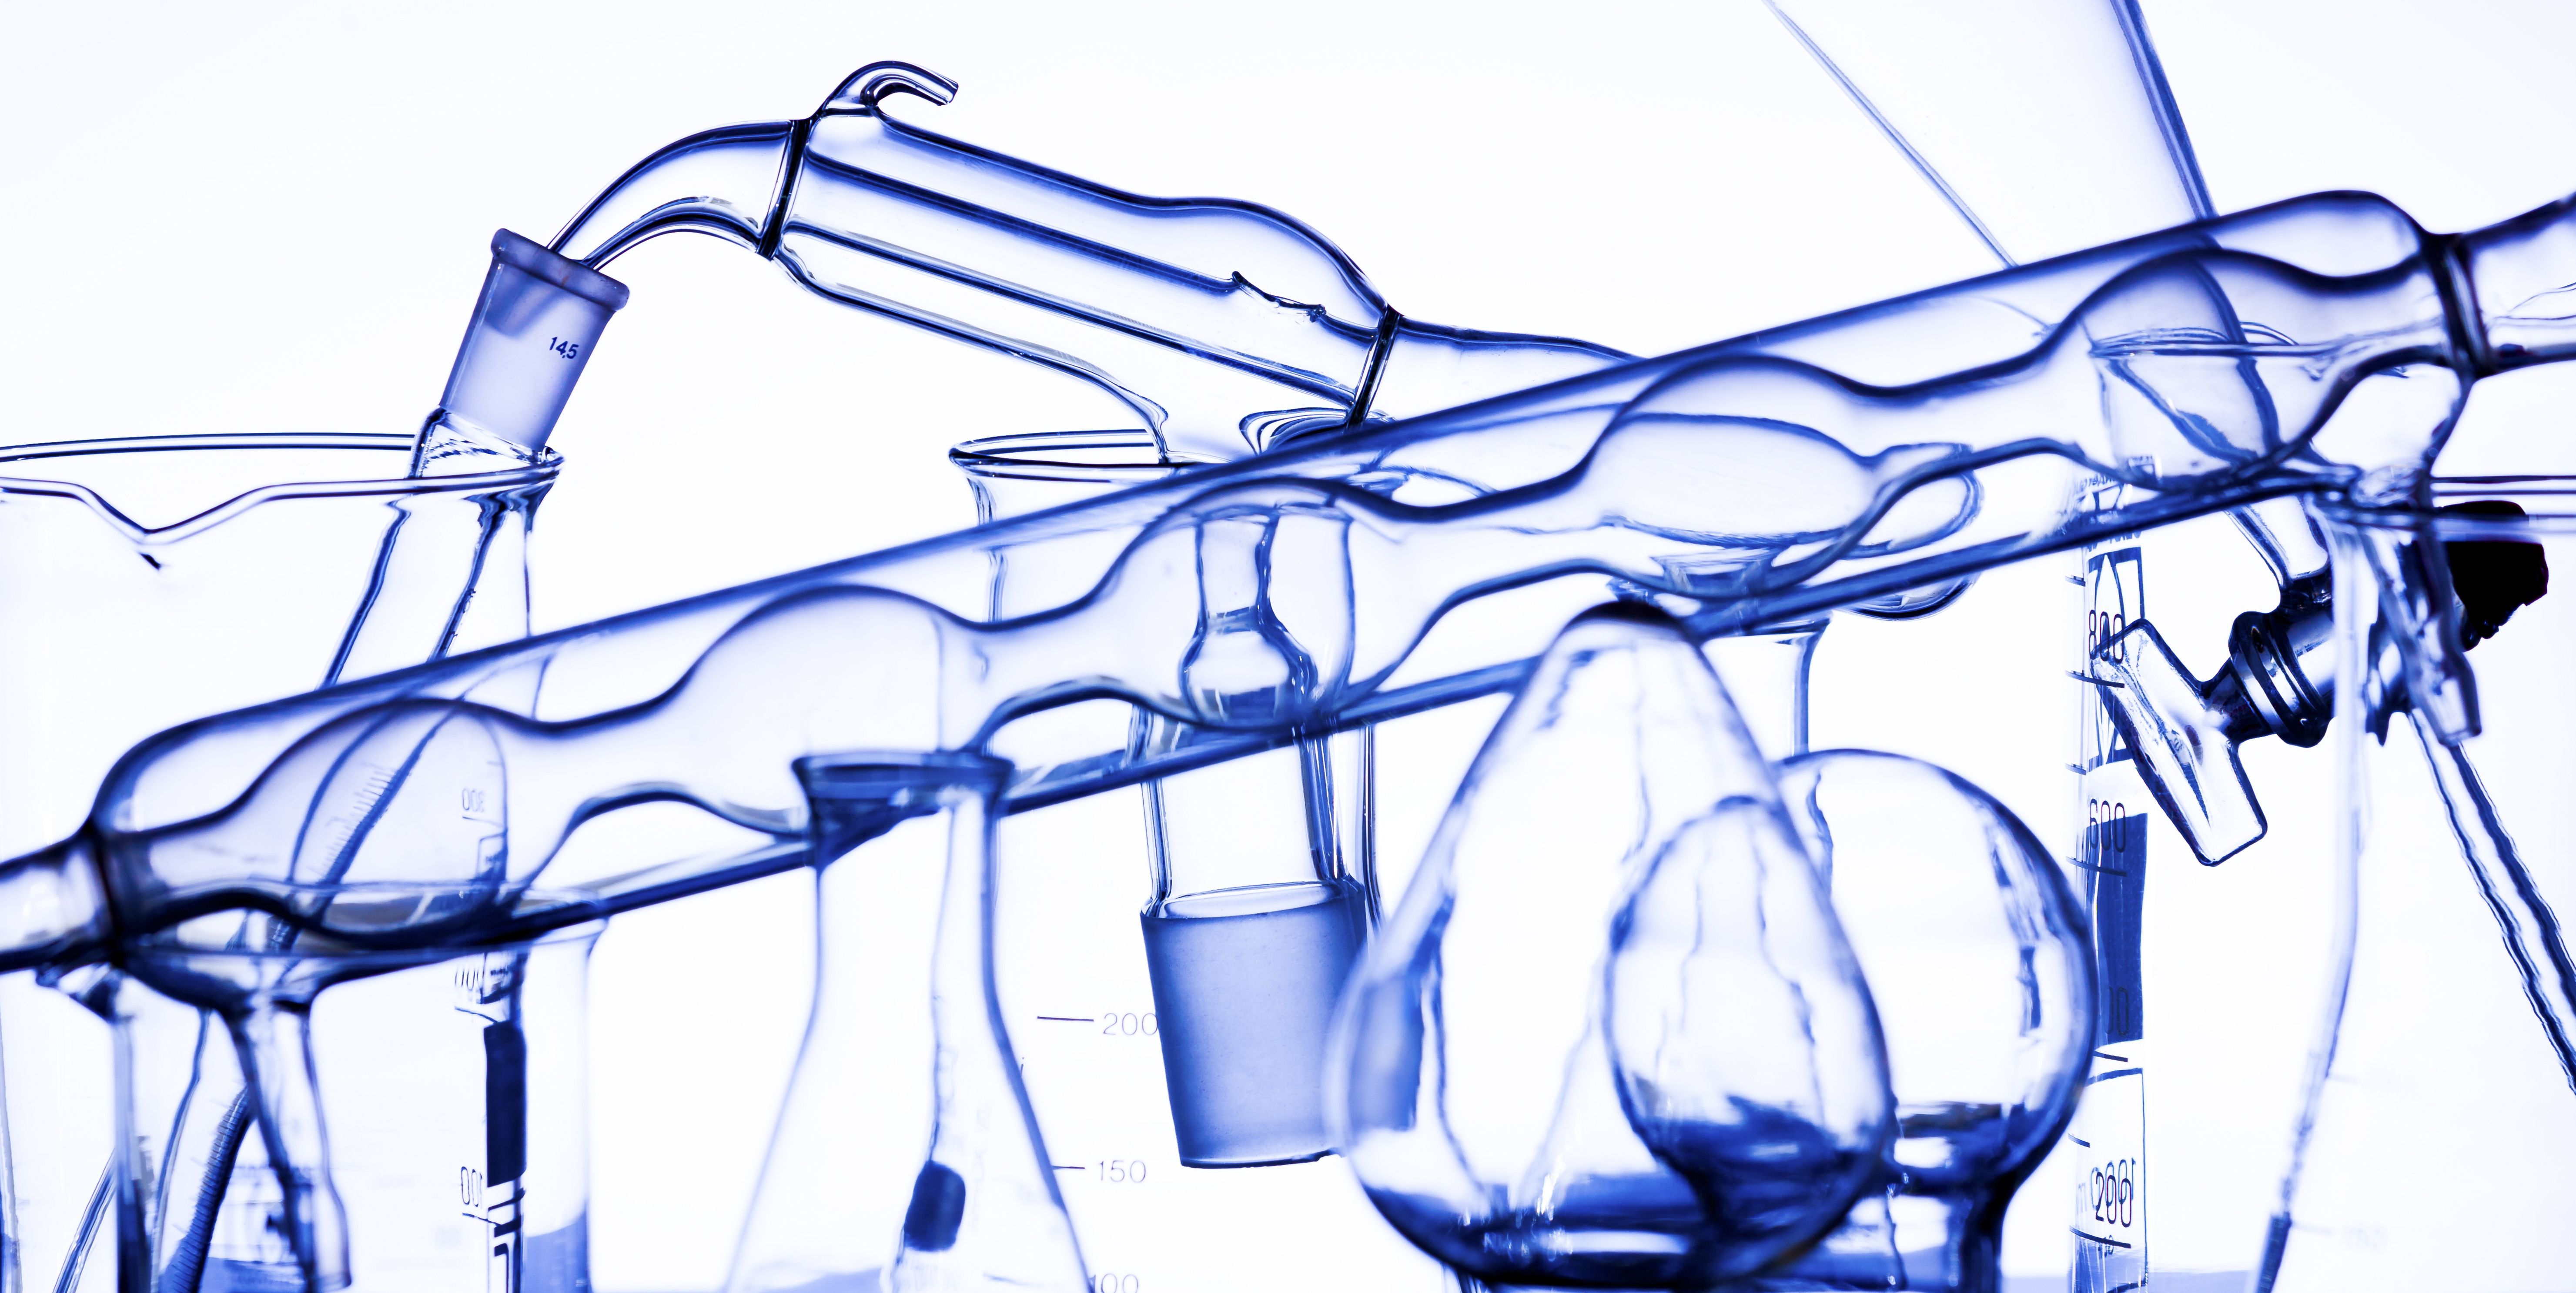 A well-equipped chemistry laboratory includes many different types of glassware.